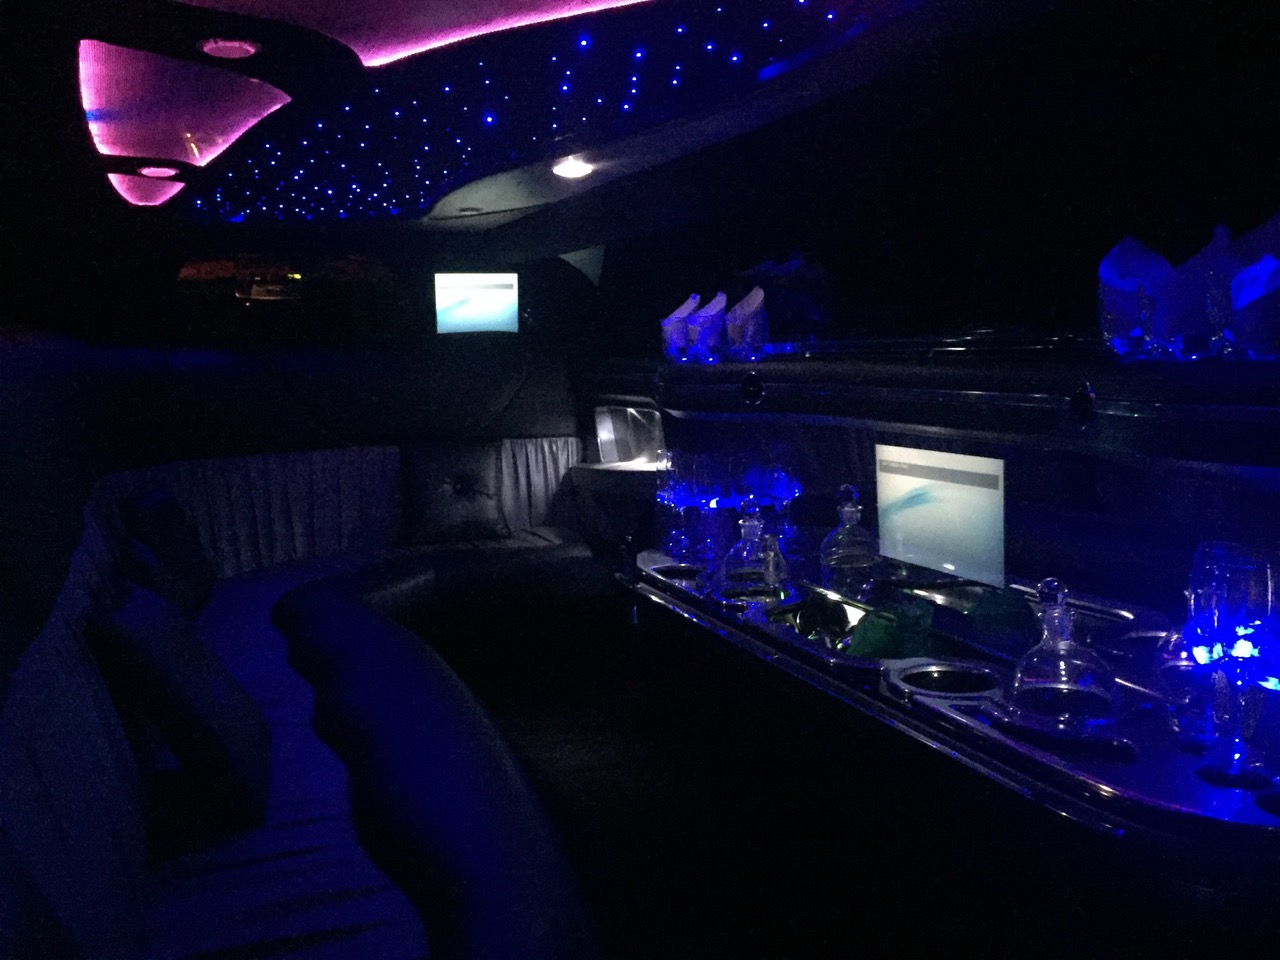 chrysler-limo-interior3